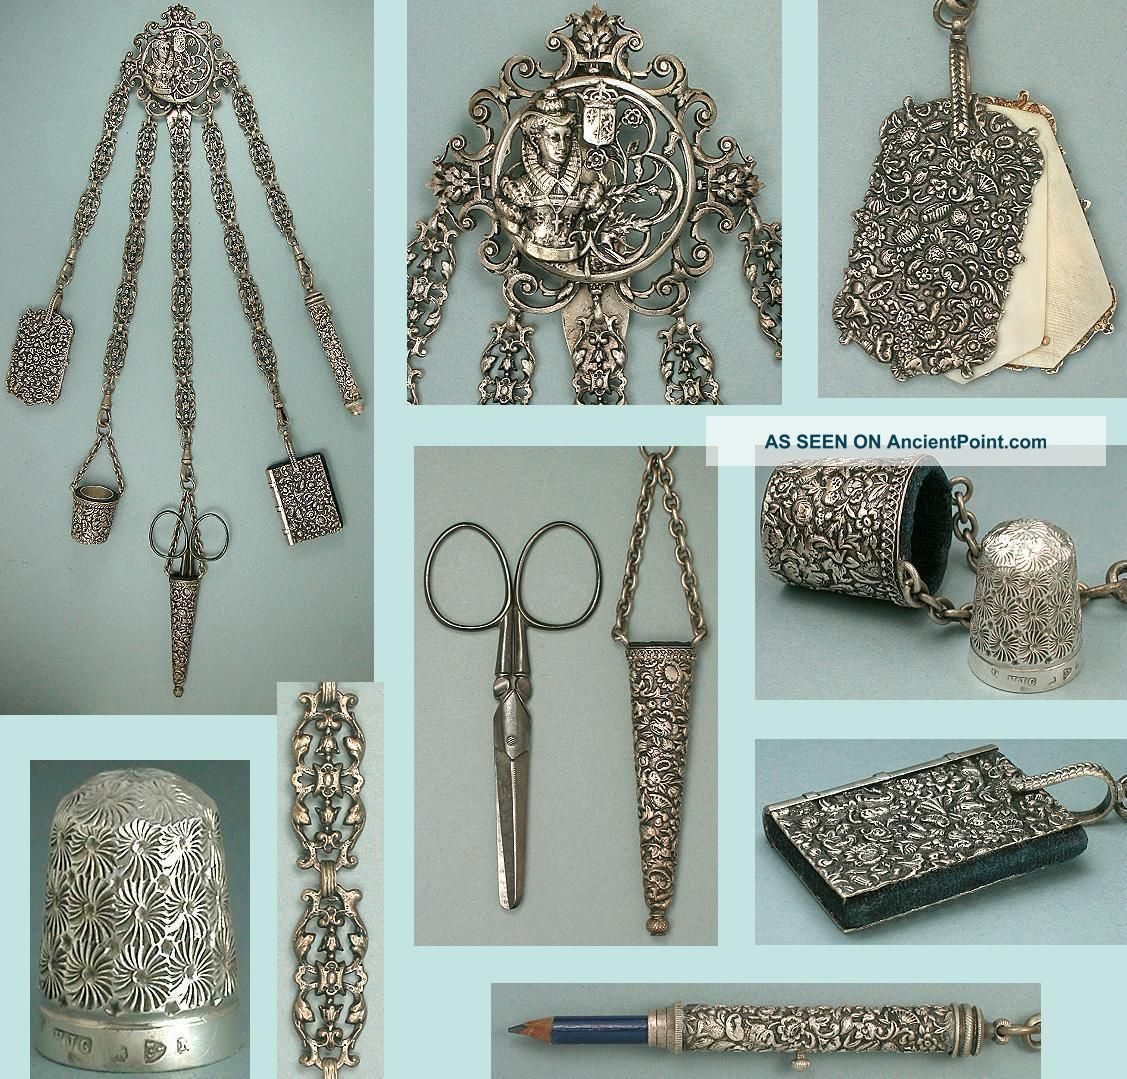 Antique Silver Filigree Sewing Chatelaine W/ 5 Attachments Circa 1890s Other Antique Sewing photo